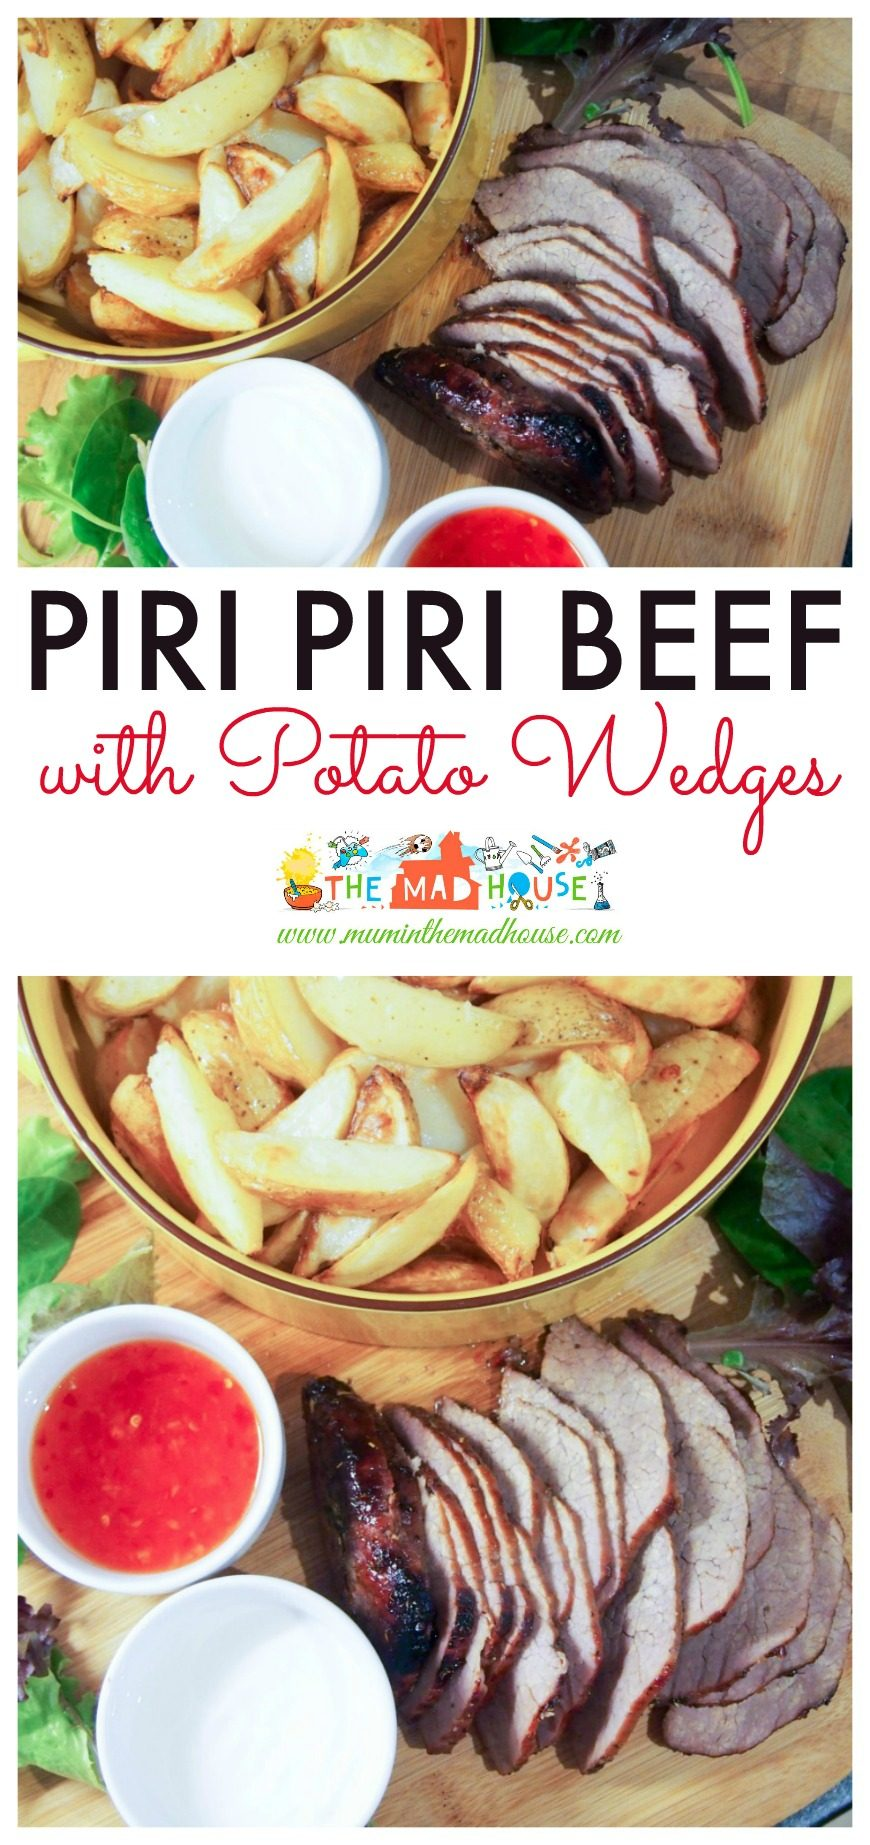 Piri Piri Beef and Wedges, a delicious, simple and flavourful roast beef recipe perfect for a midweek mini roast or for cooking with children. This family meal will become a regular family favorite.